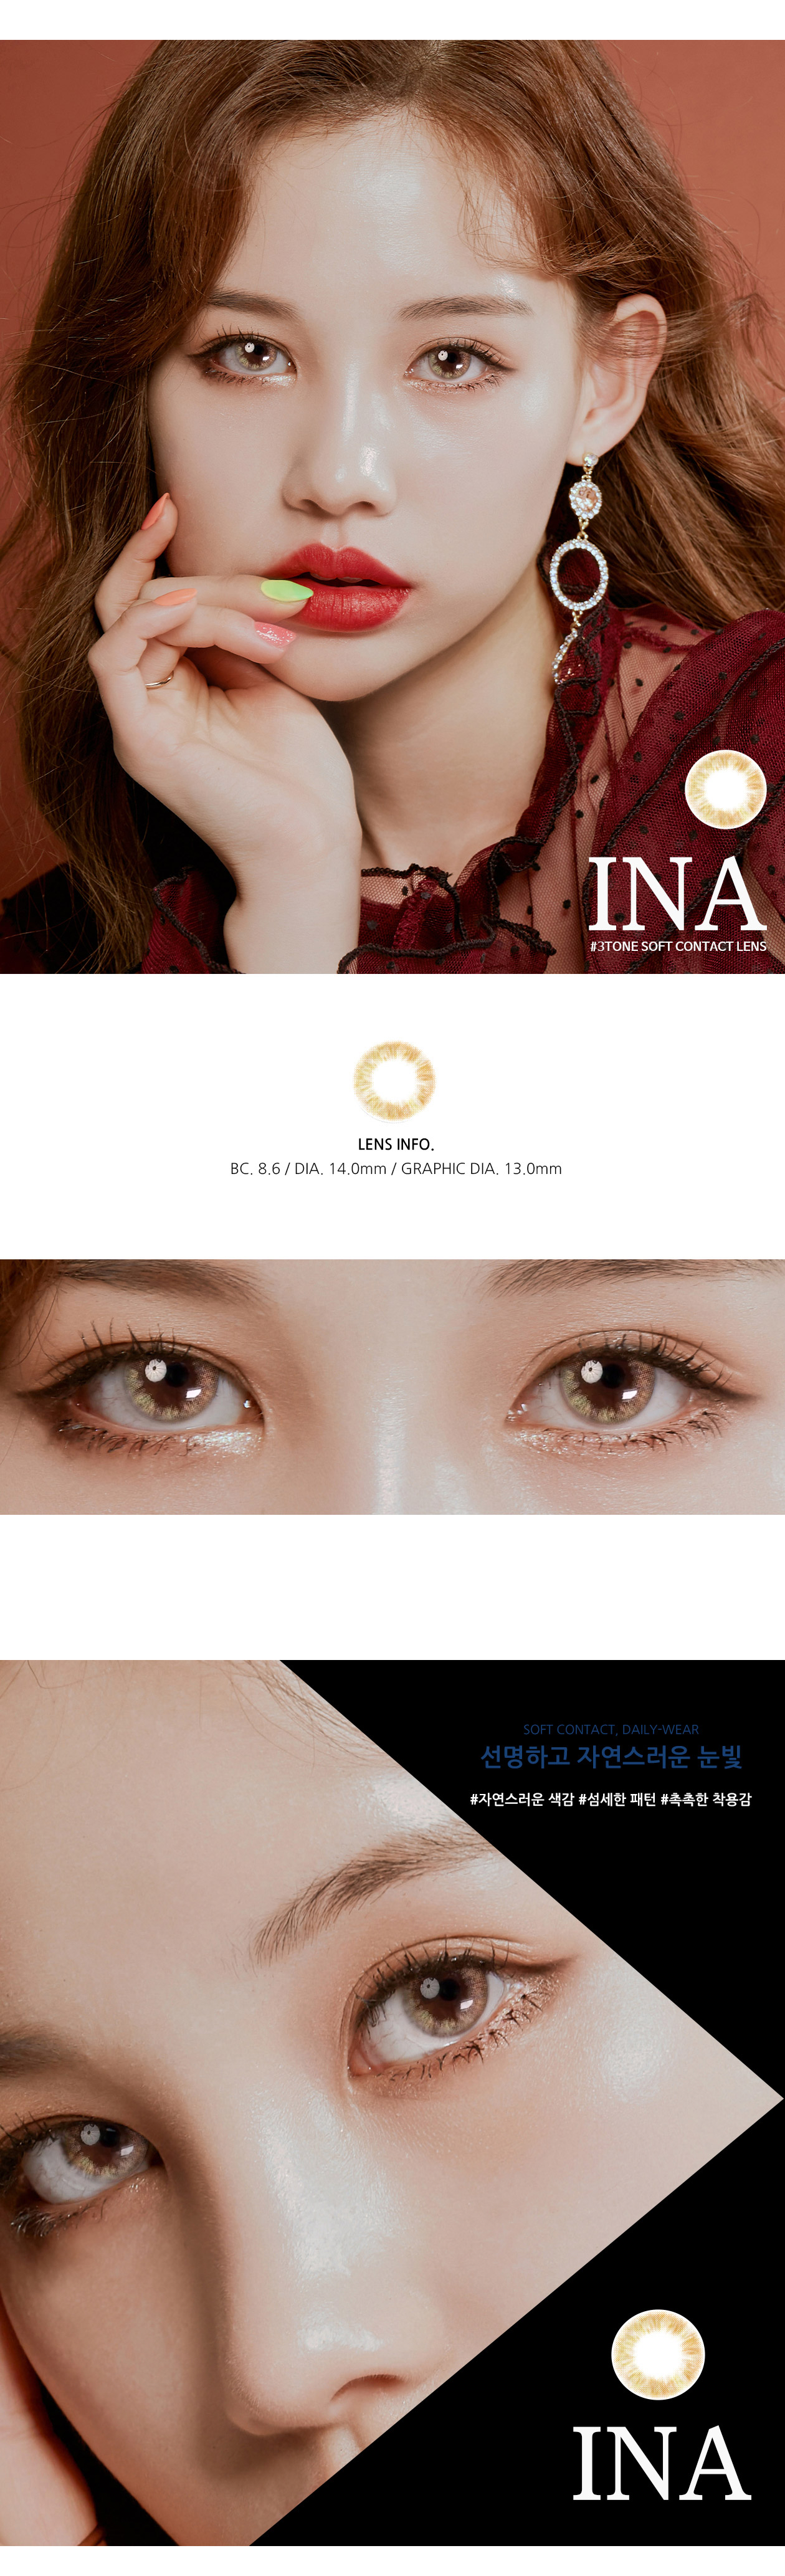 ina-brown-circle-lenses.jpg